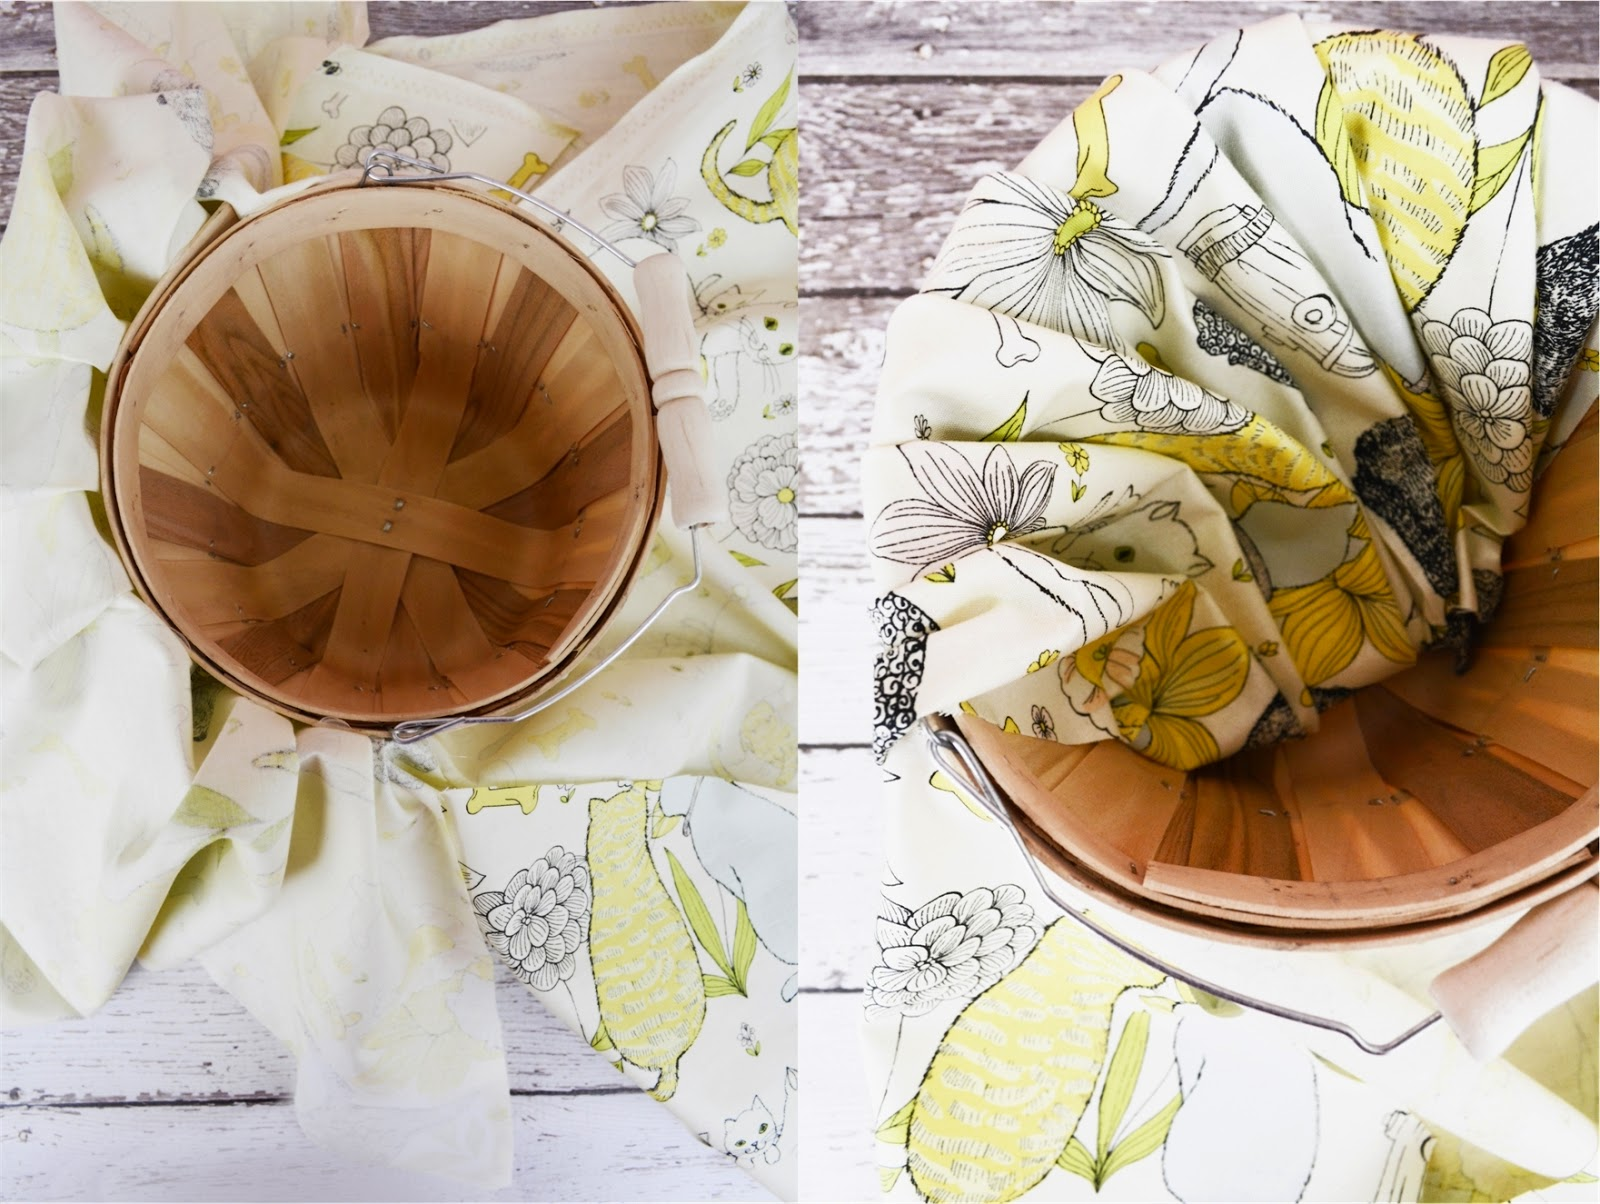 How To Make A Flower Girl Basket With Fabric : Curly girl kitchen wedding diy flower